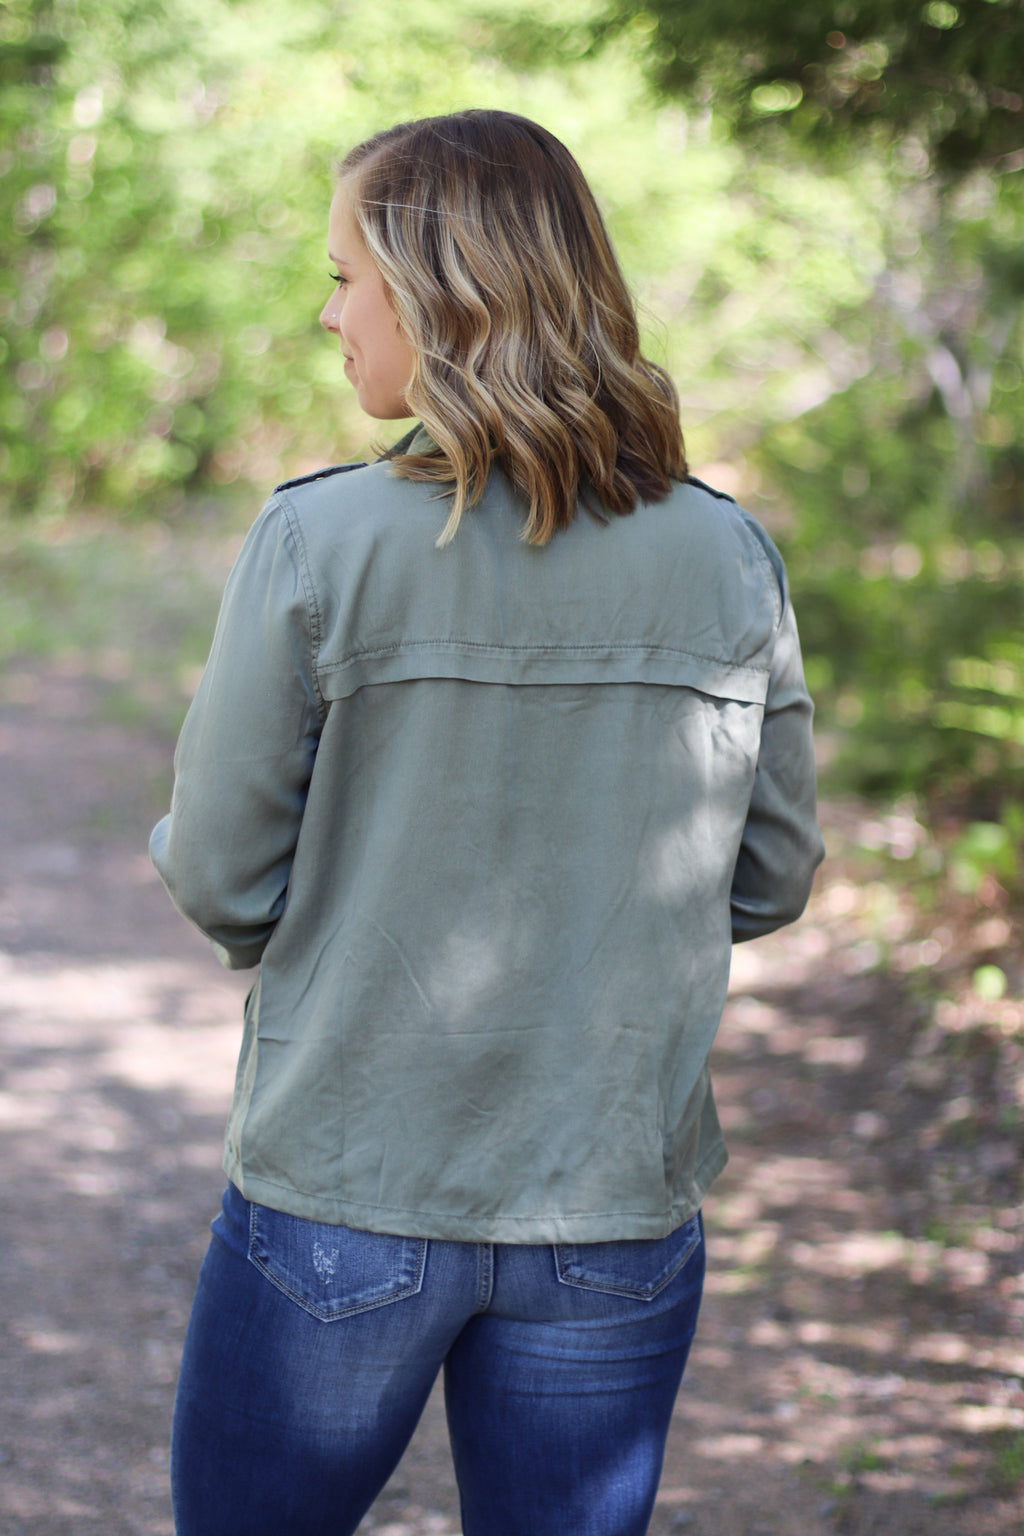 The Zada Utility Jacket